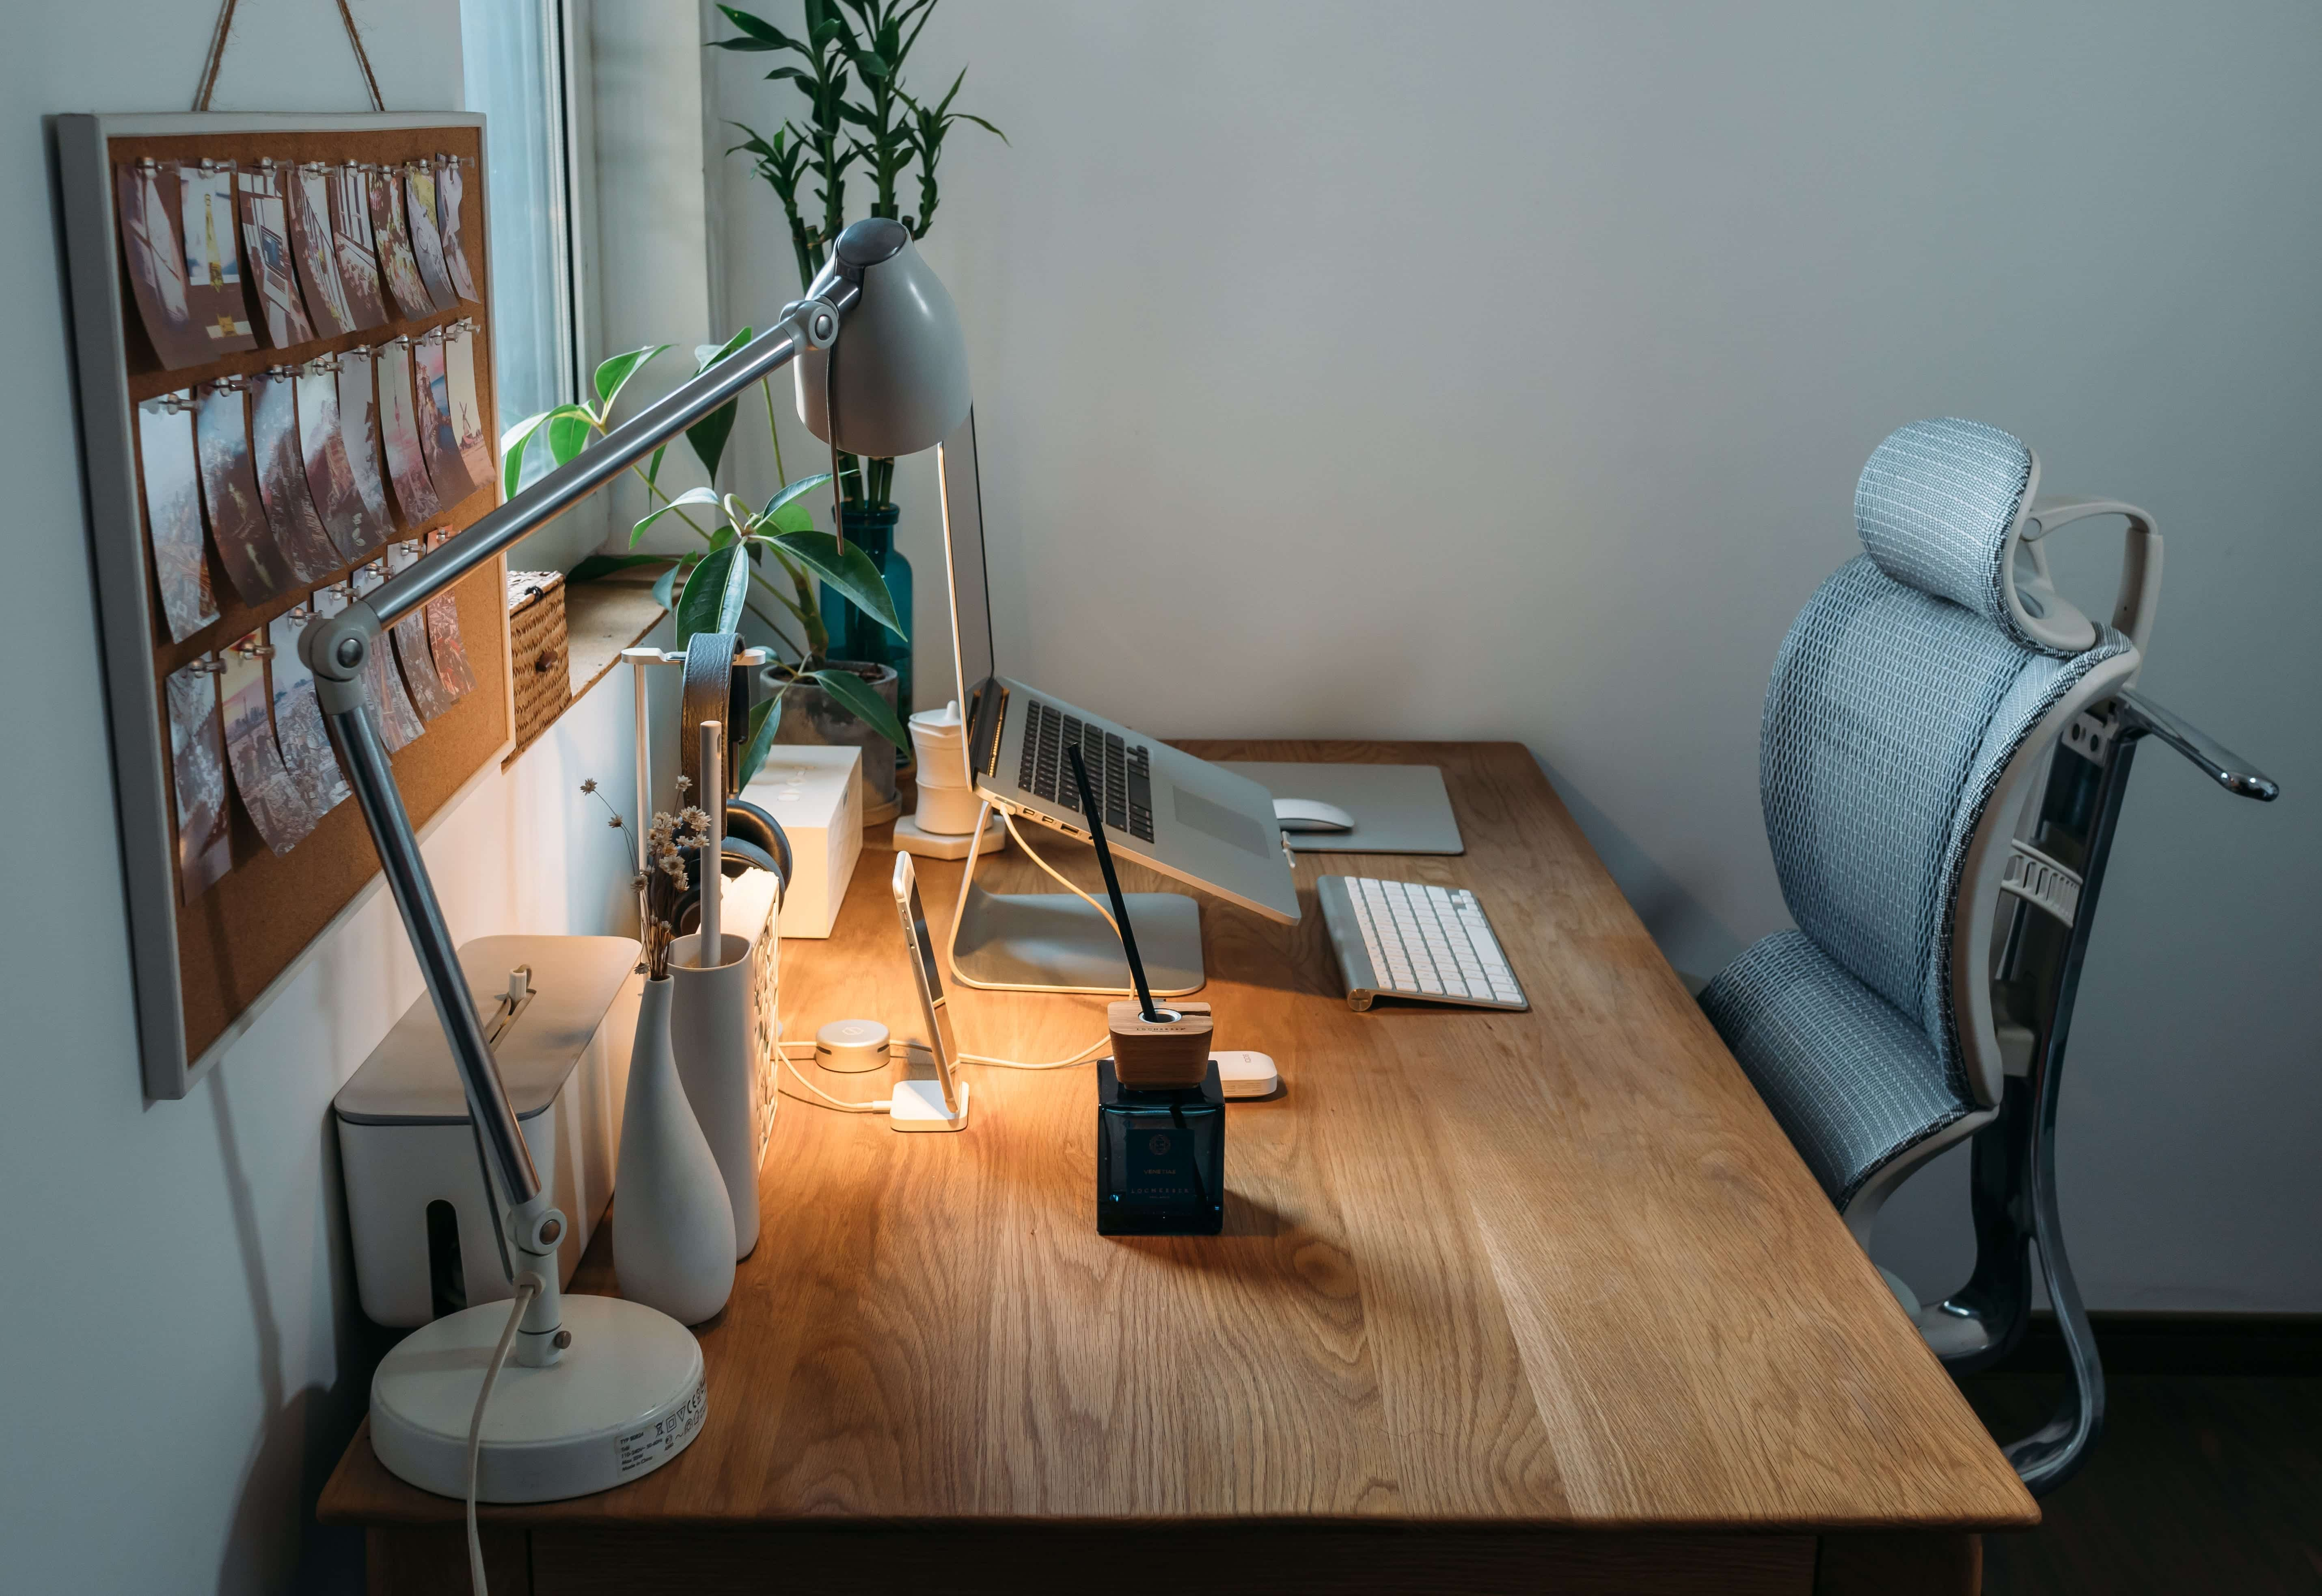 Desk with computer, lamp, and personal effects; image by Samule Sun, via Unsplash.com.